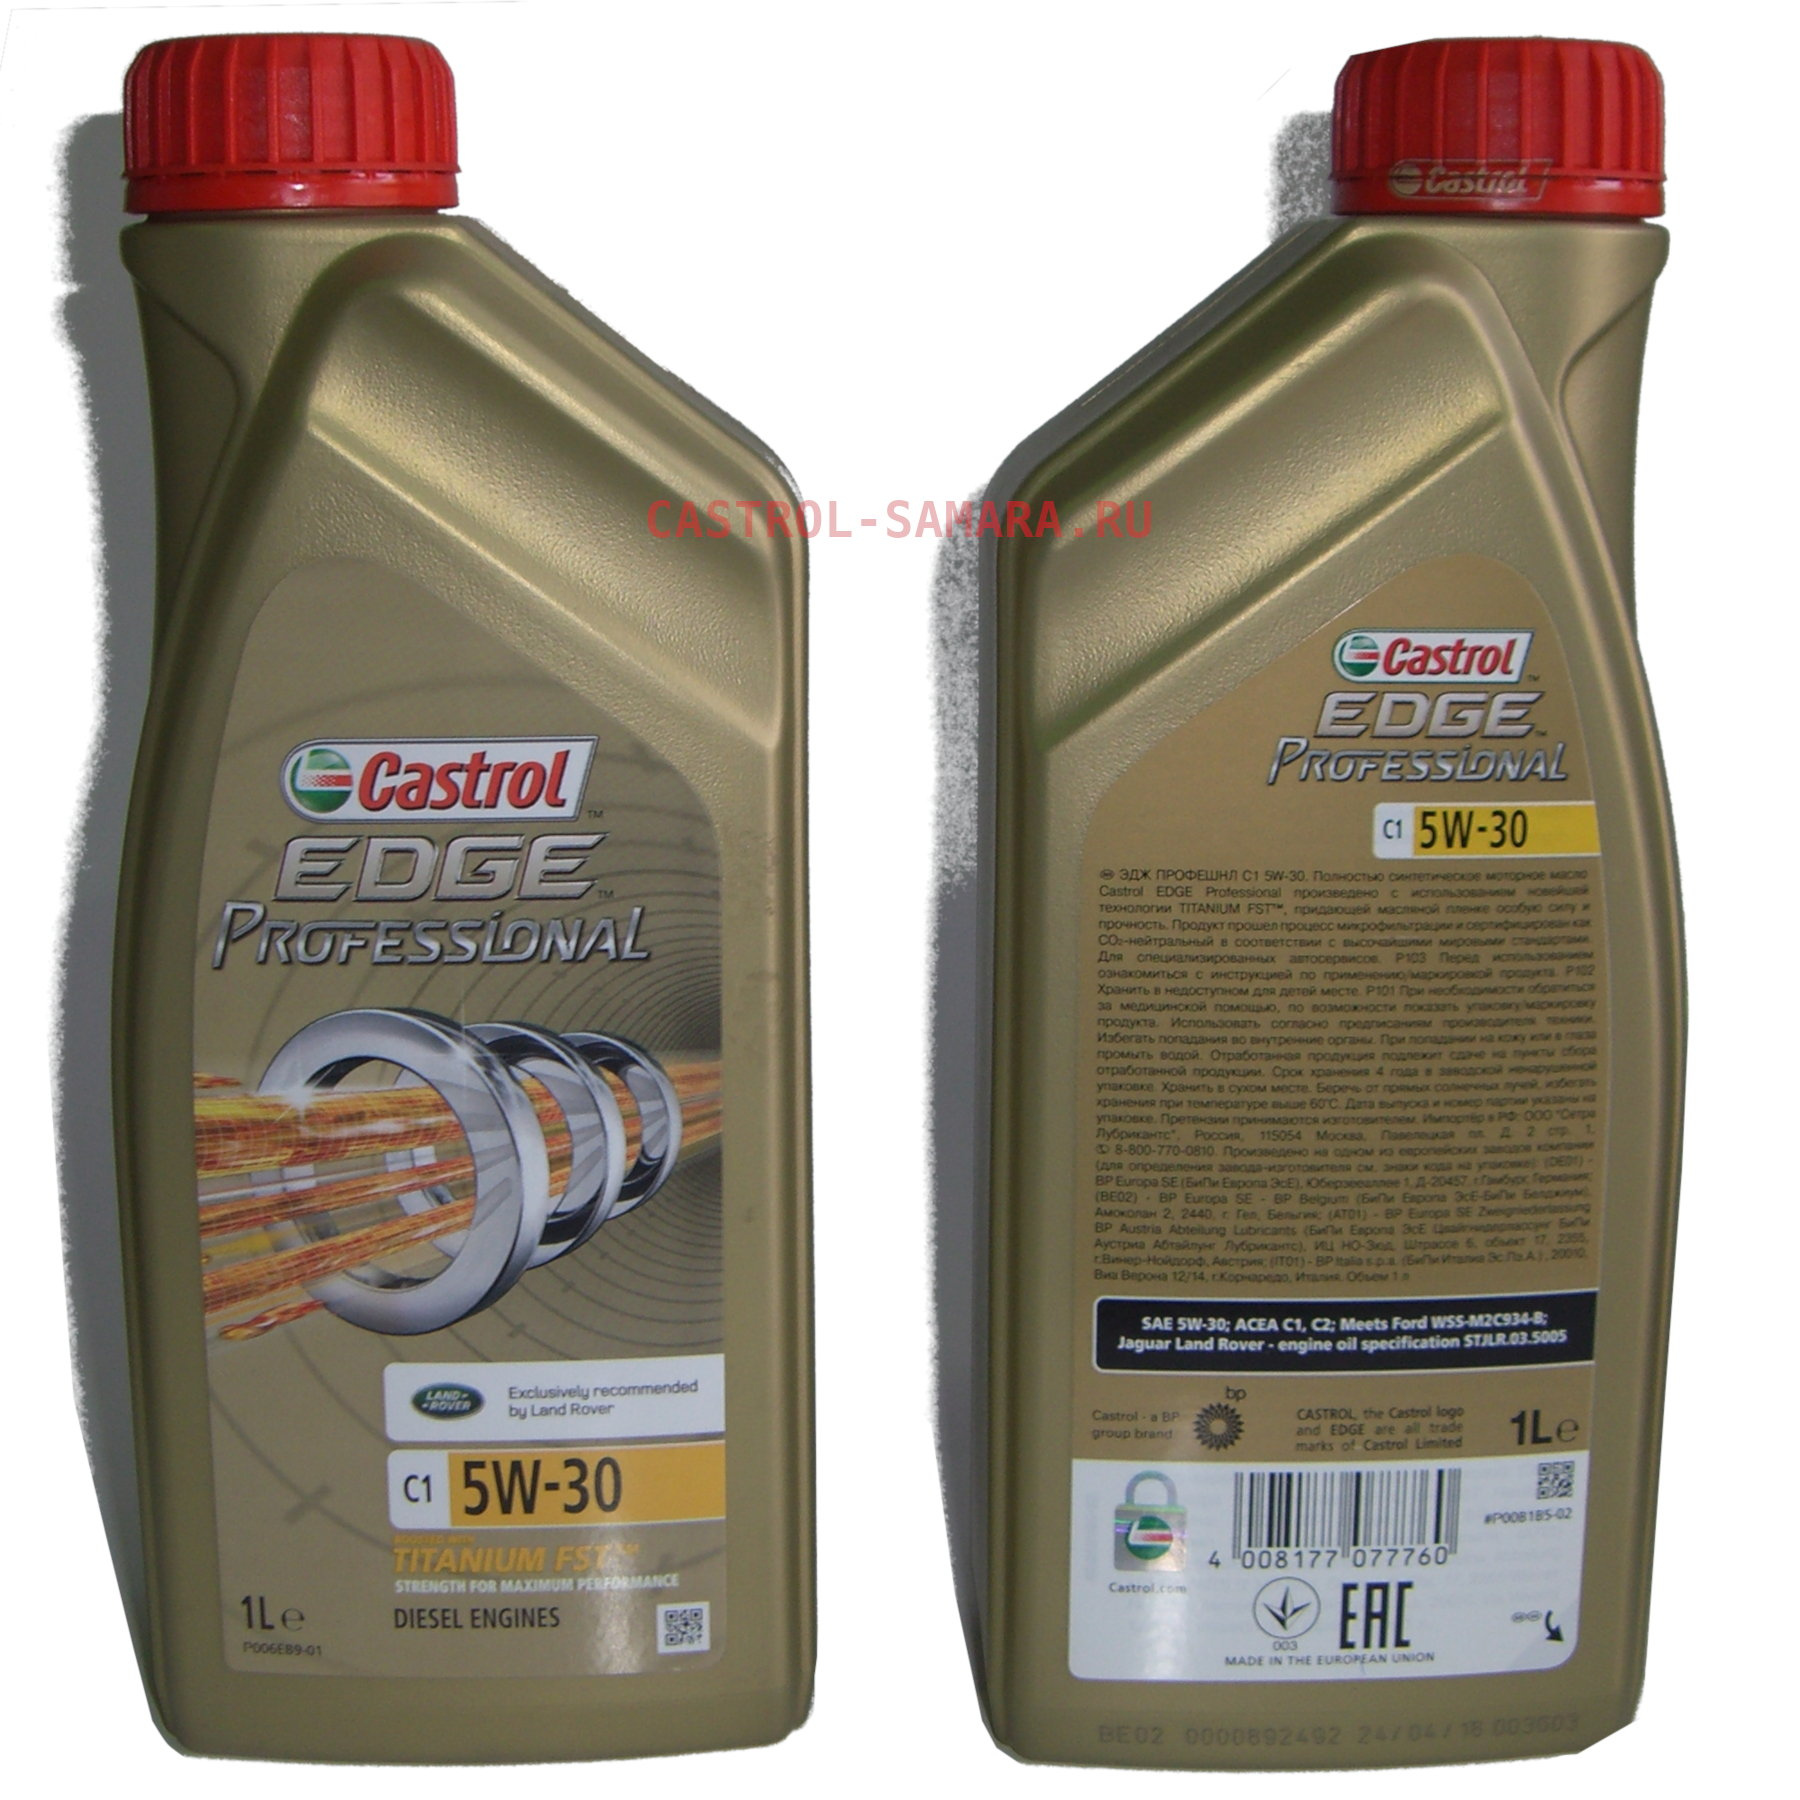 Моторное масло Castrol EDGE Professional C1 5W-30 1л. (Land Rover)